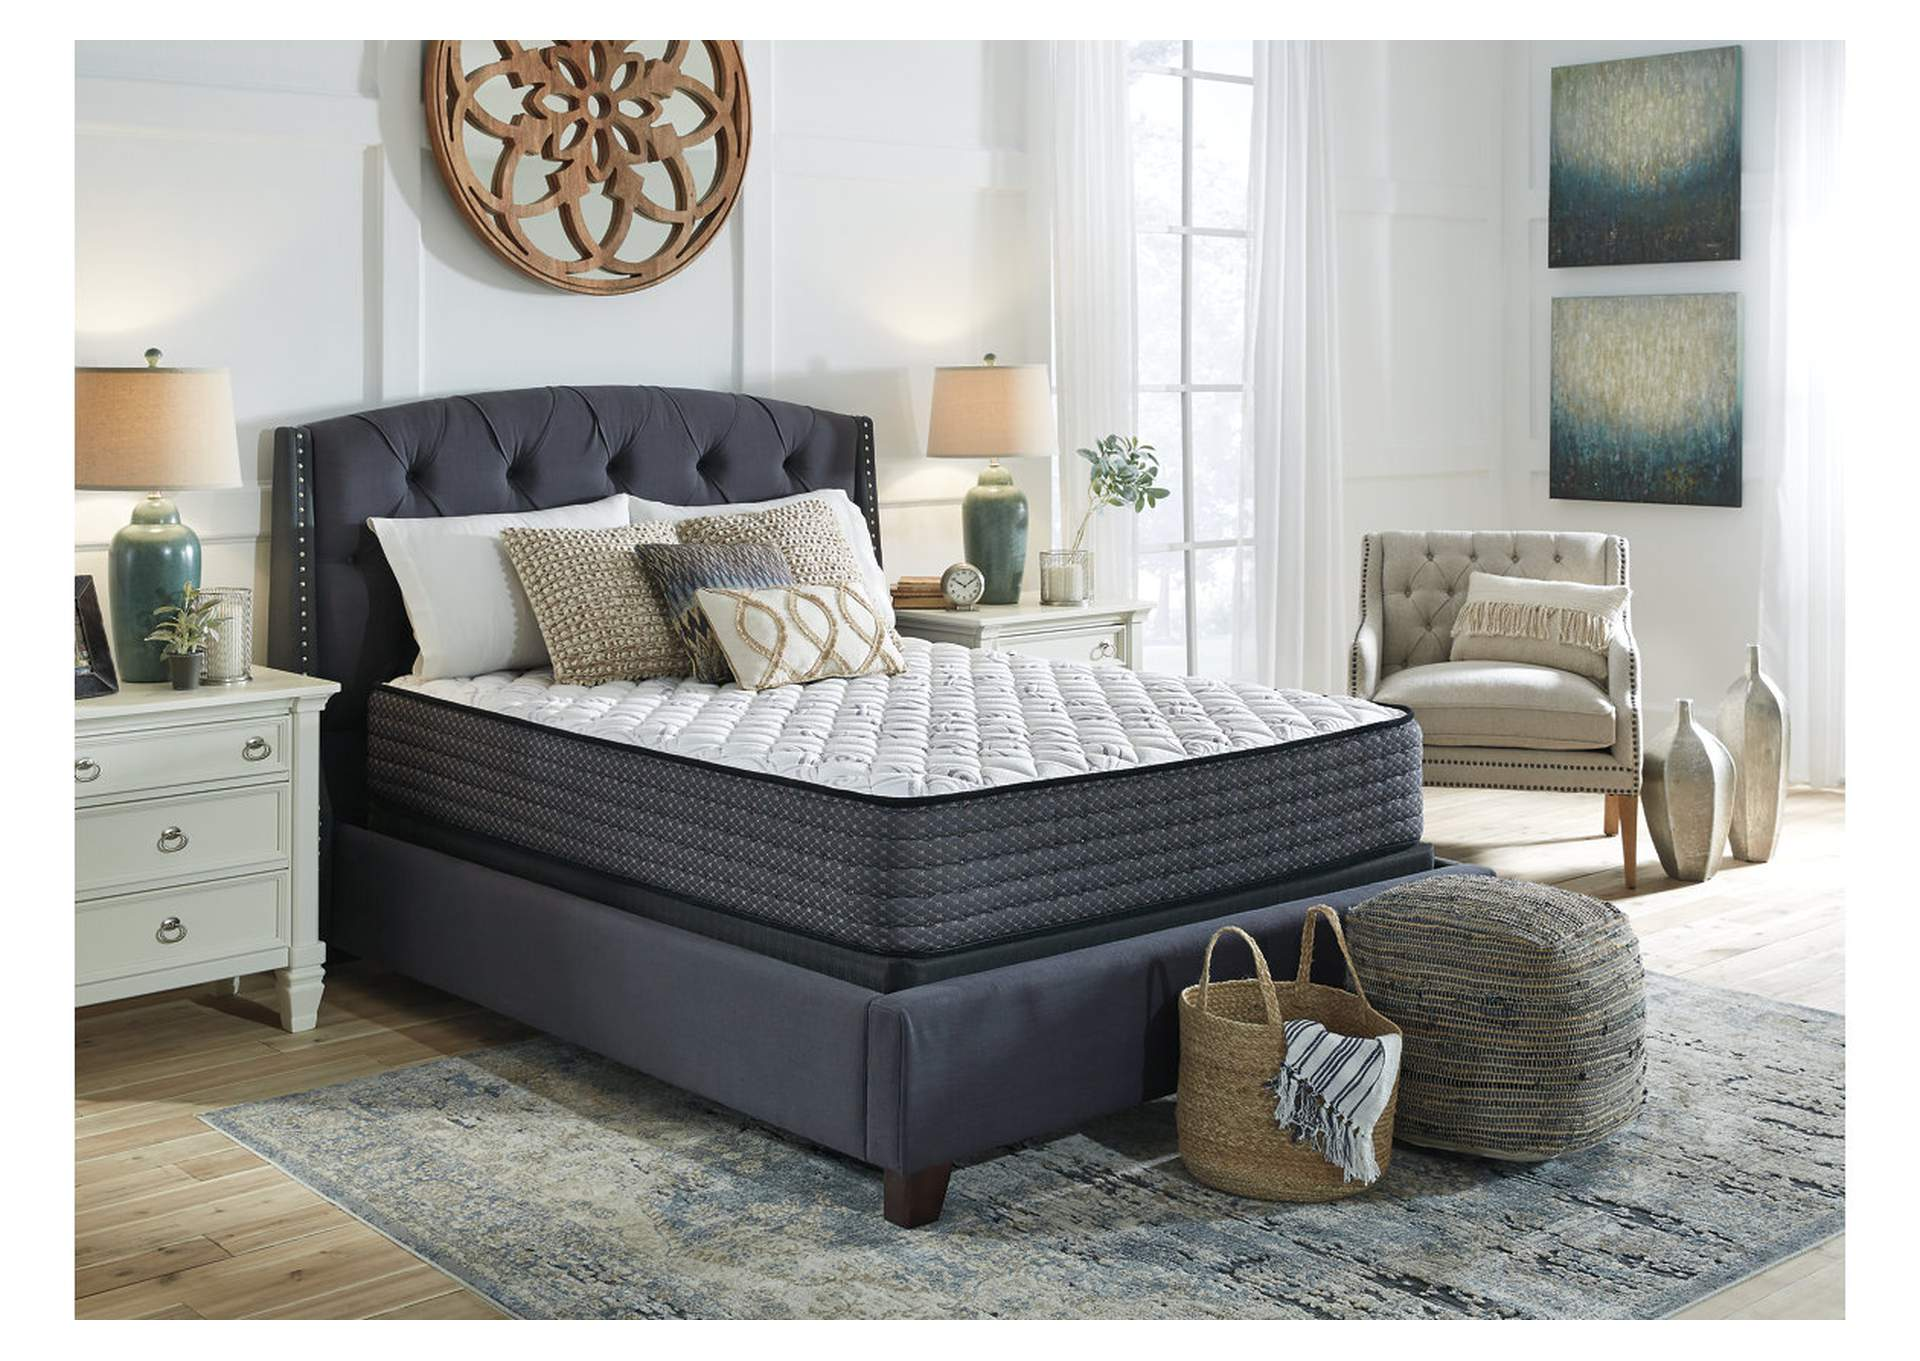 Limited Edition Firm Twin Mattress w/Foundation,Sierra Sleep by Ashley